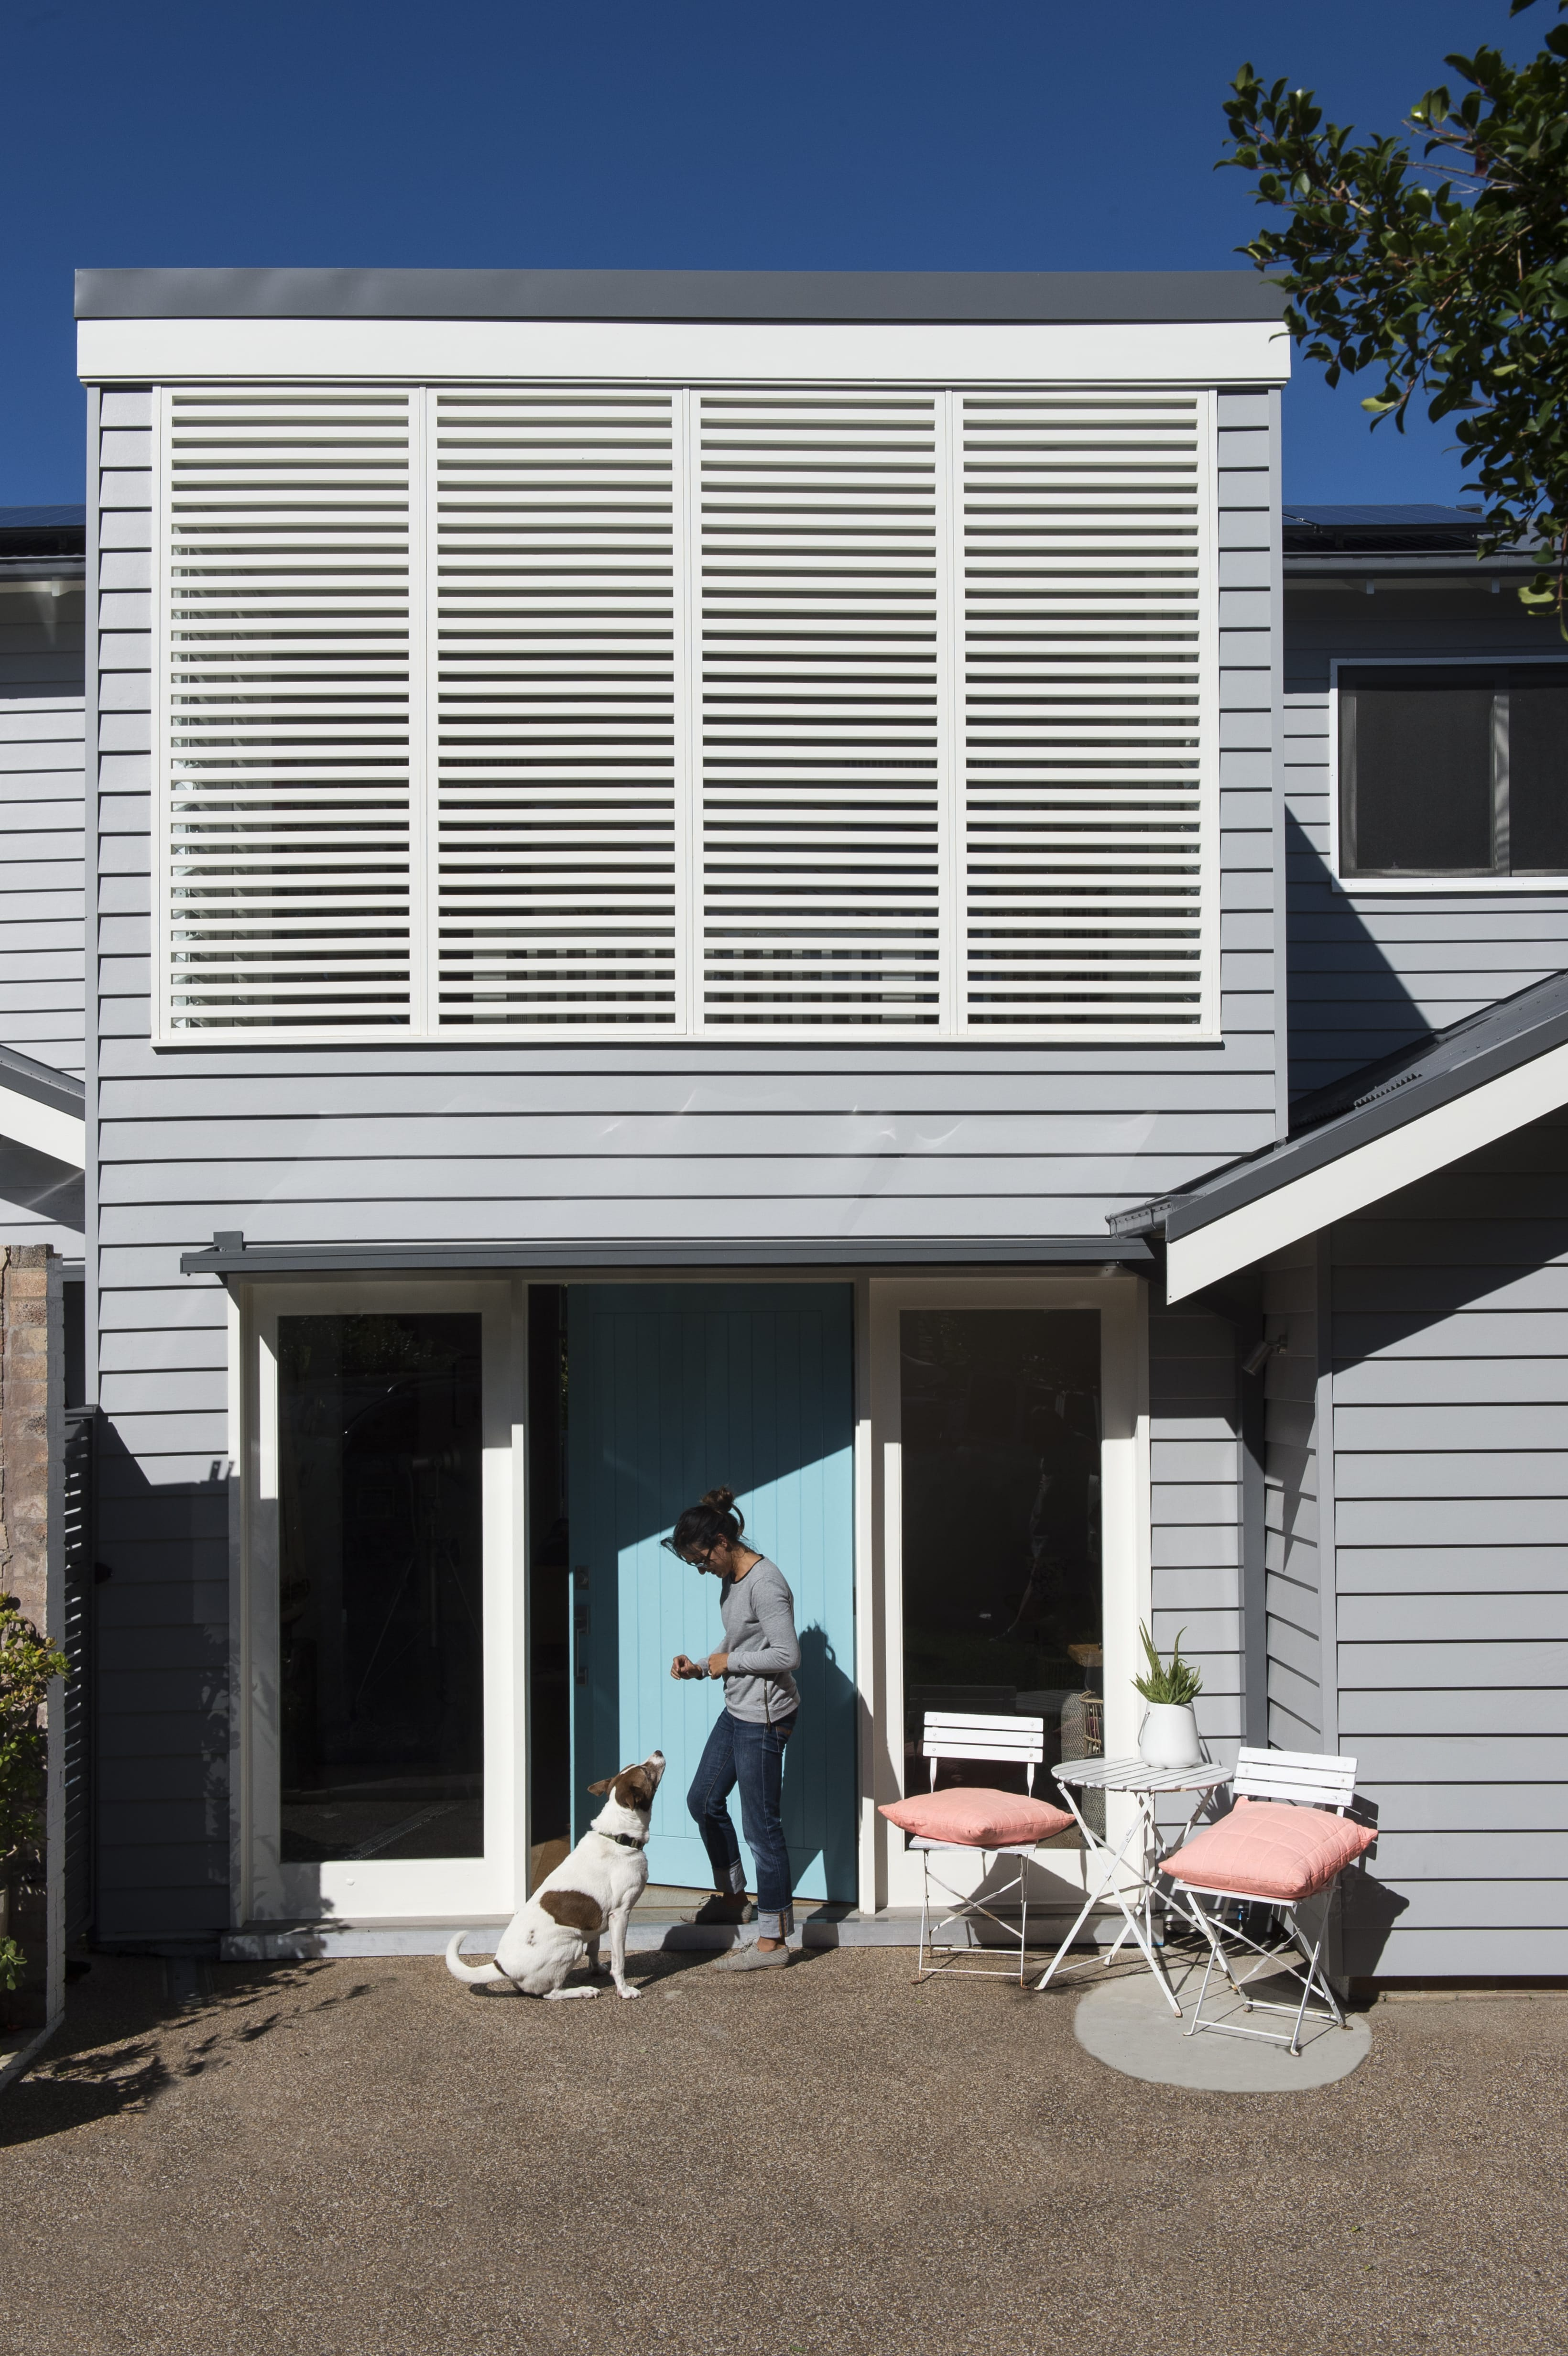 Gallery Of The Big Beach Shack By Tash Clarke Architects Local Australian Design And Interiors Freshwater, Nsw Image 3